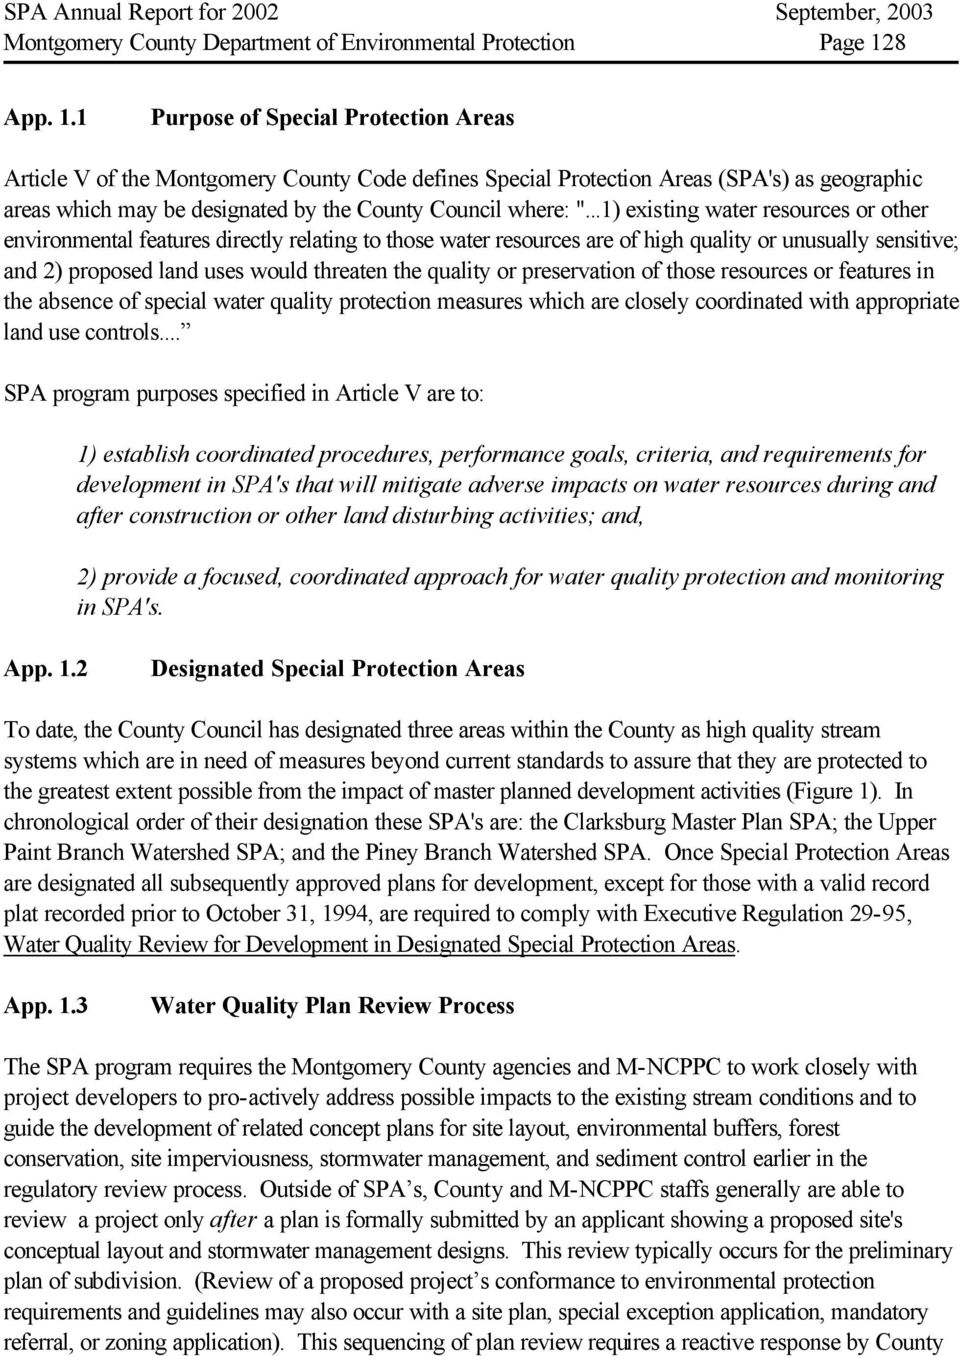 "1 Purpose of Special Protection Areas Article V of the Montgomery County Code defines Special Protection Areas (SPA's) as geographic areas which may be designated by the County Council where: ""."